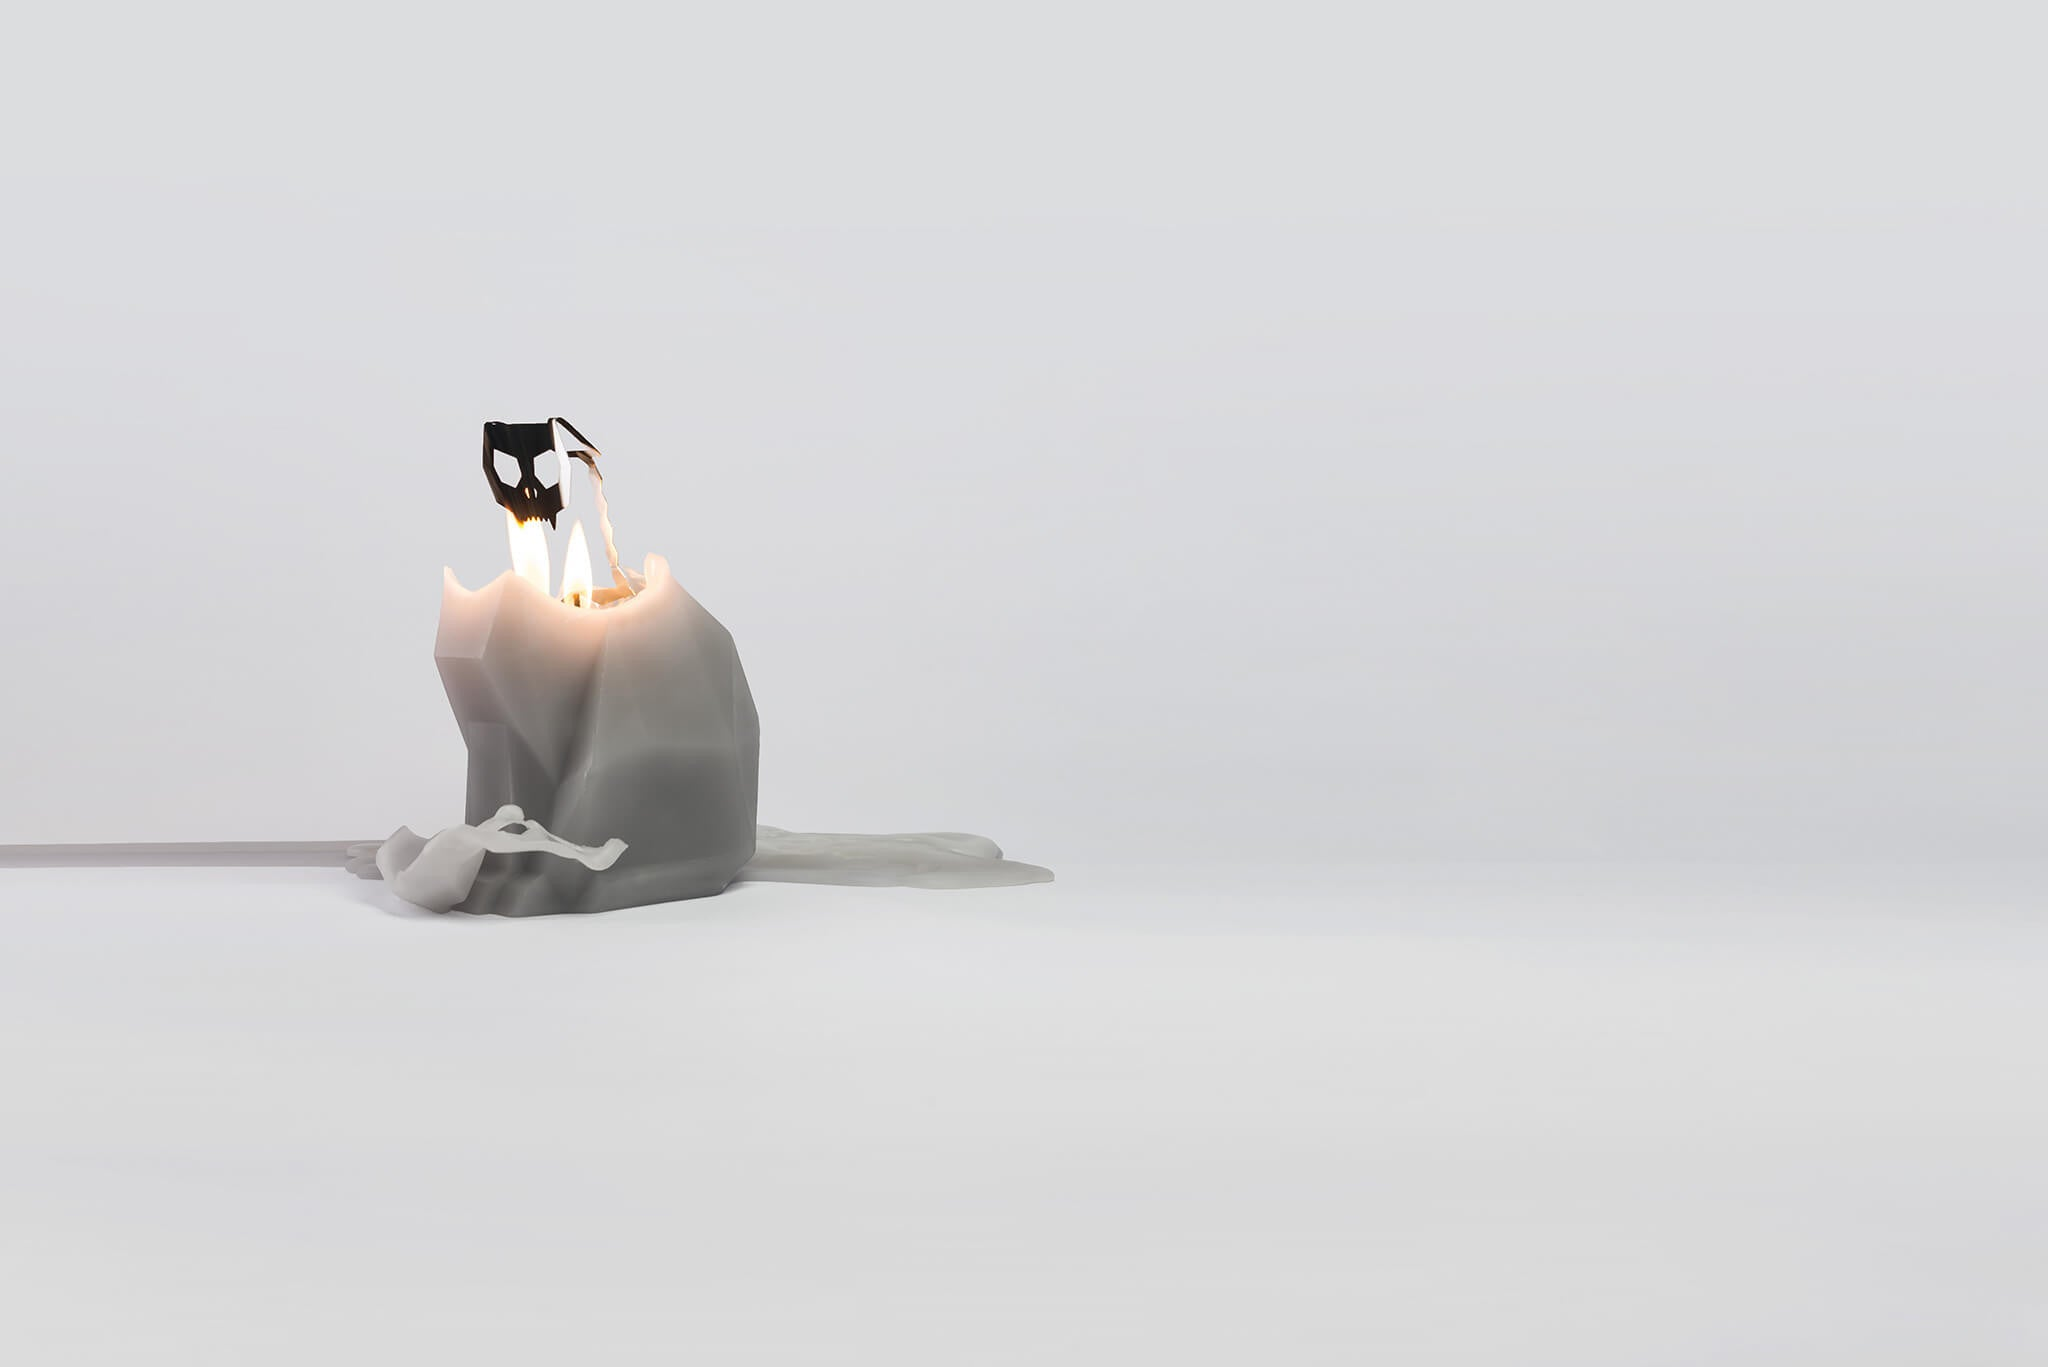 A melting grey kisa the cat pyropet reveals inner skeleton frame as the wax melts the candle.